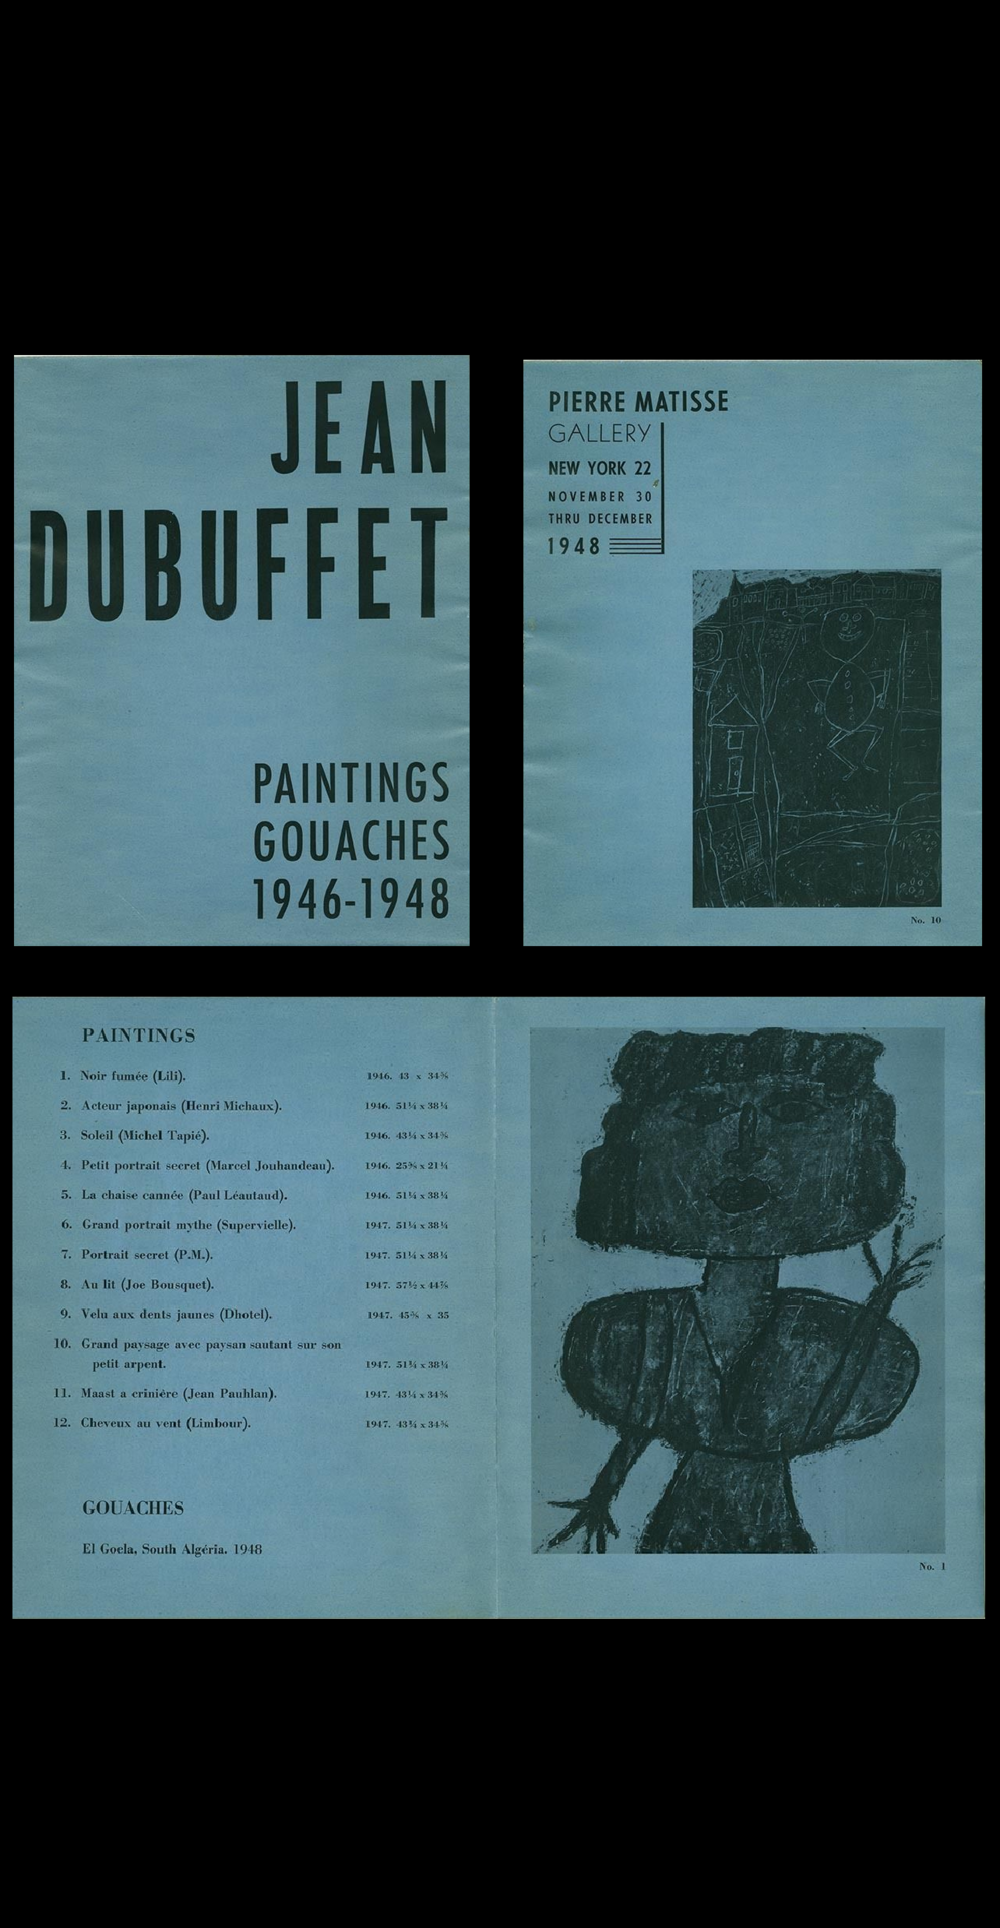 """Paintings Gouaches 1946-1948"", exhibition catalogue, 1948, Pierre Matisse Gallery NYC."